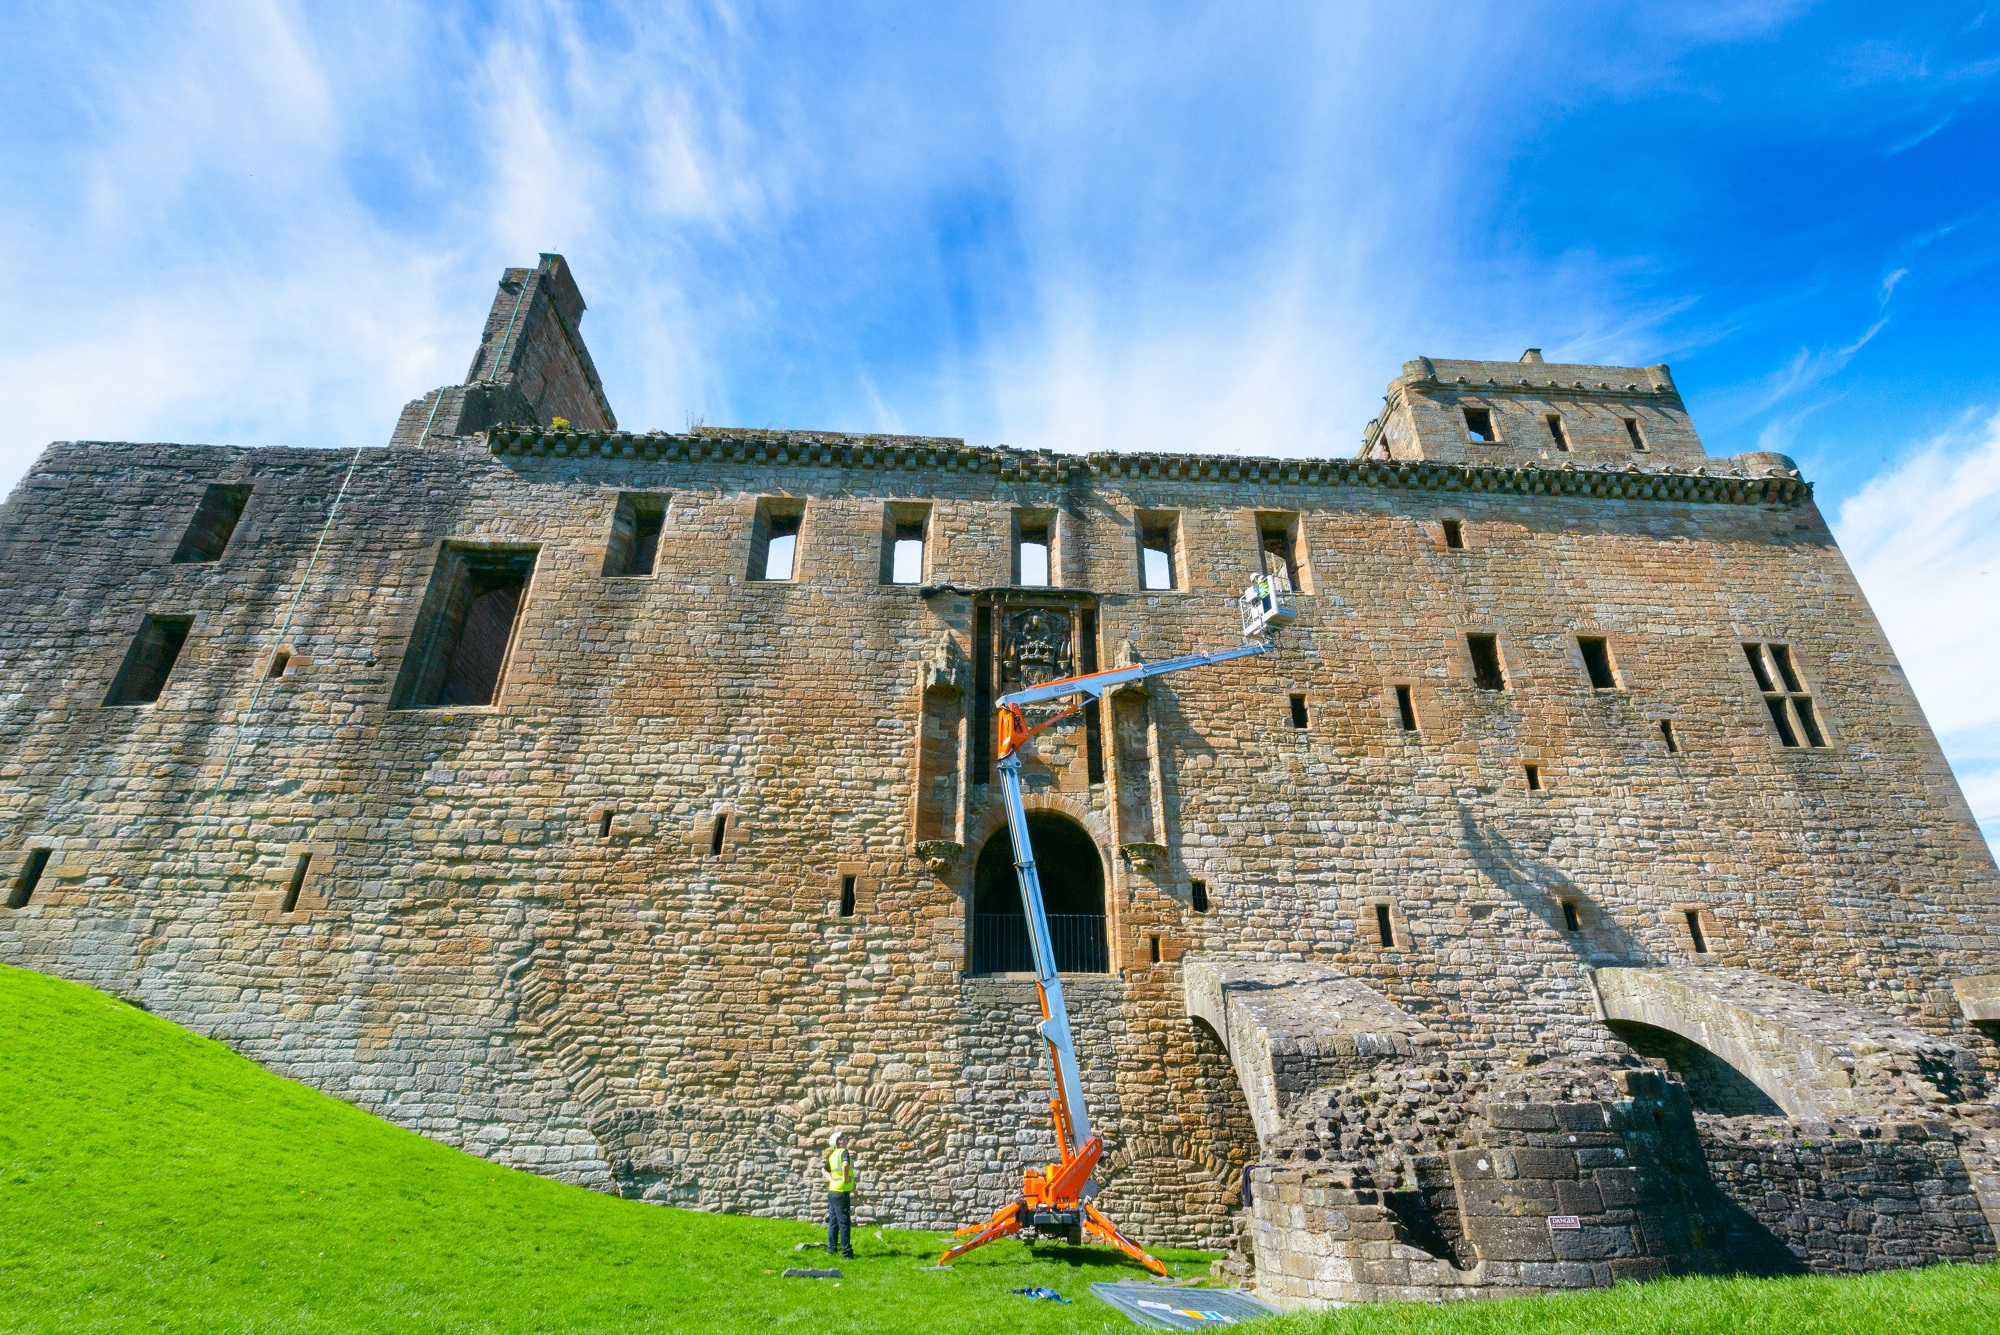 A cherrypicker in front of Linlithgow Palace